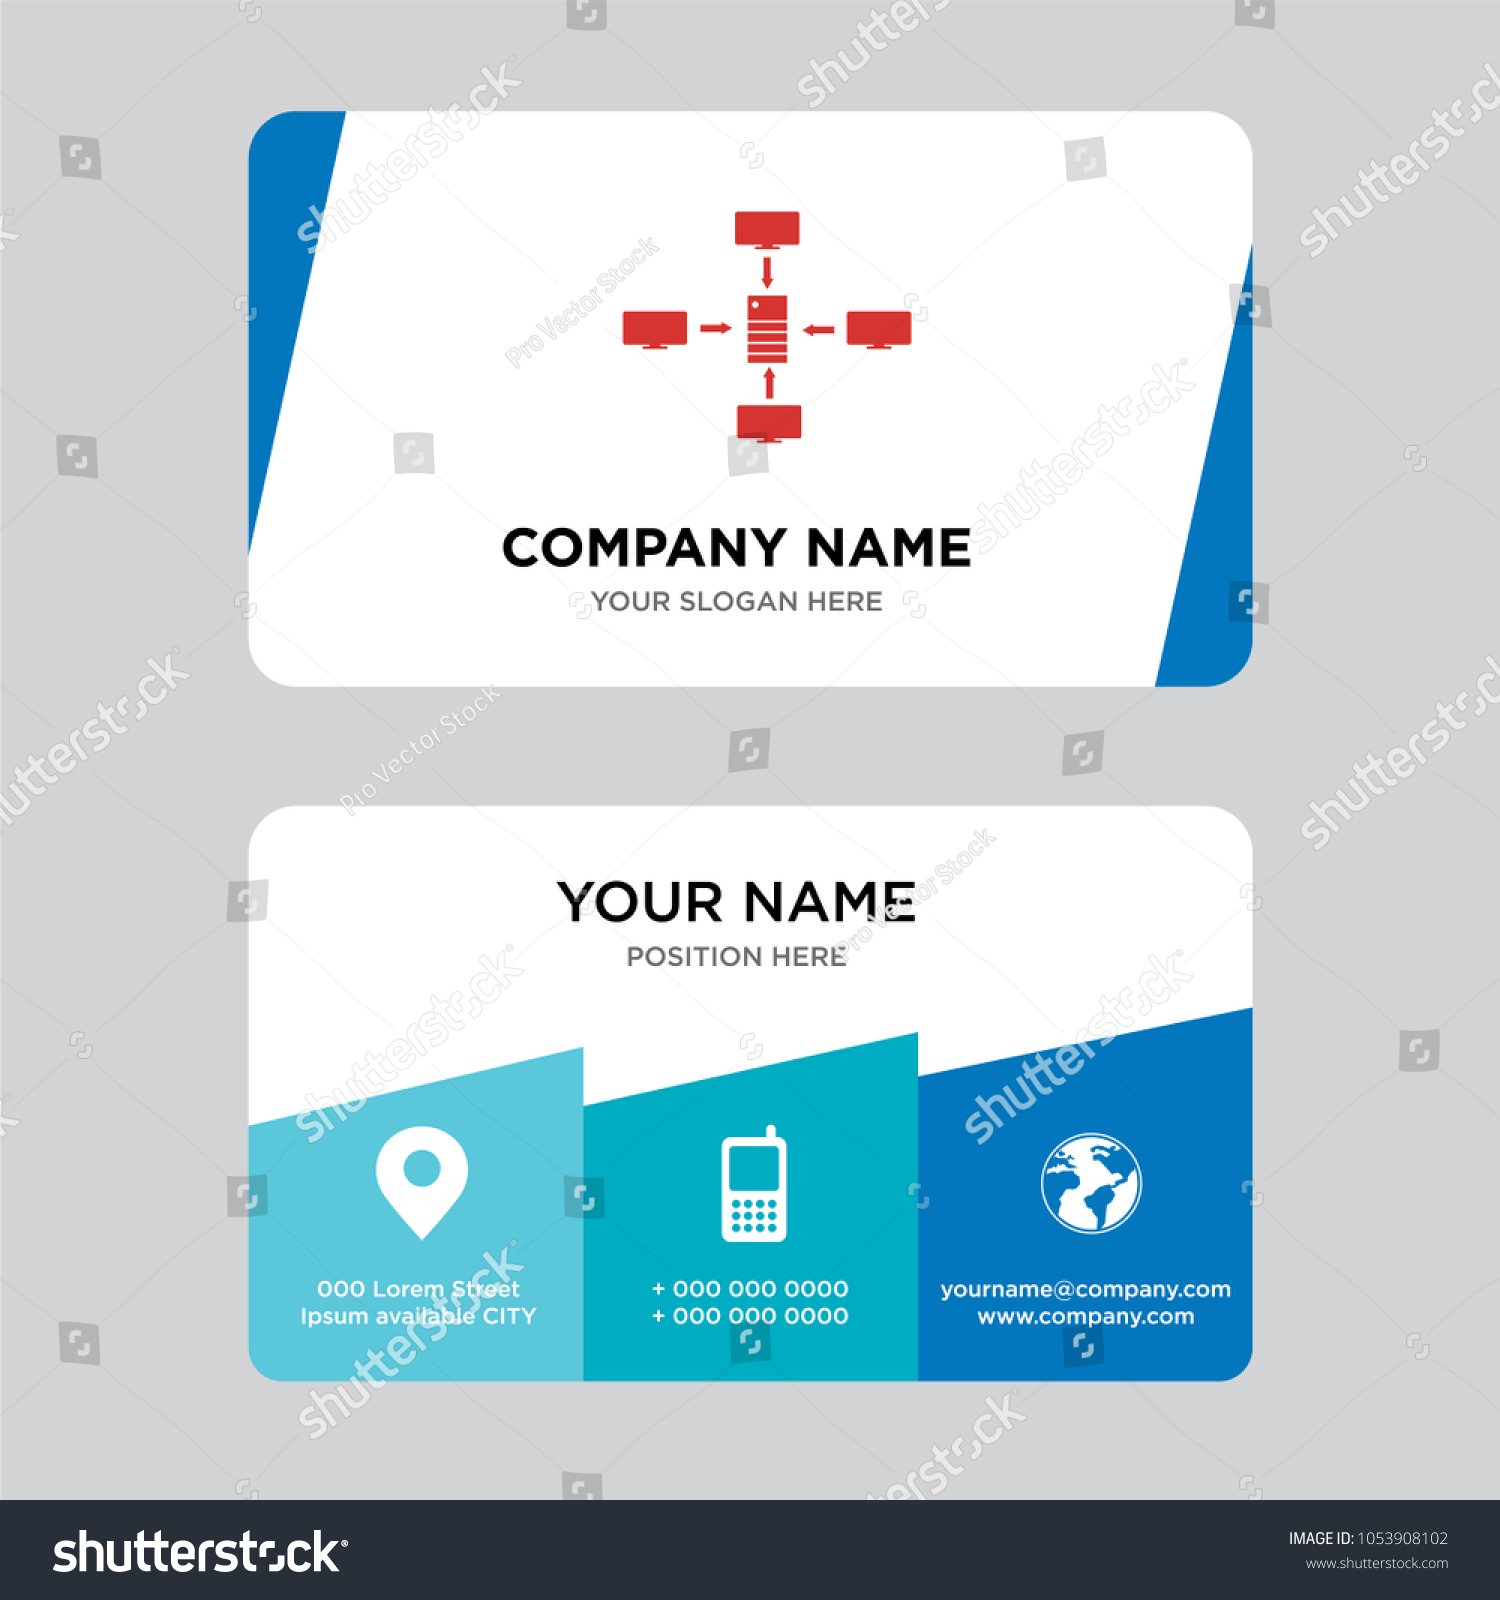 Excellent Company Intranet Template Photos - Example Resume ...